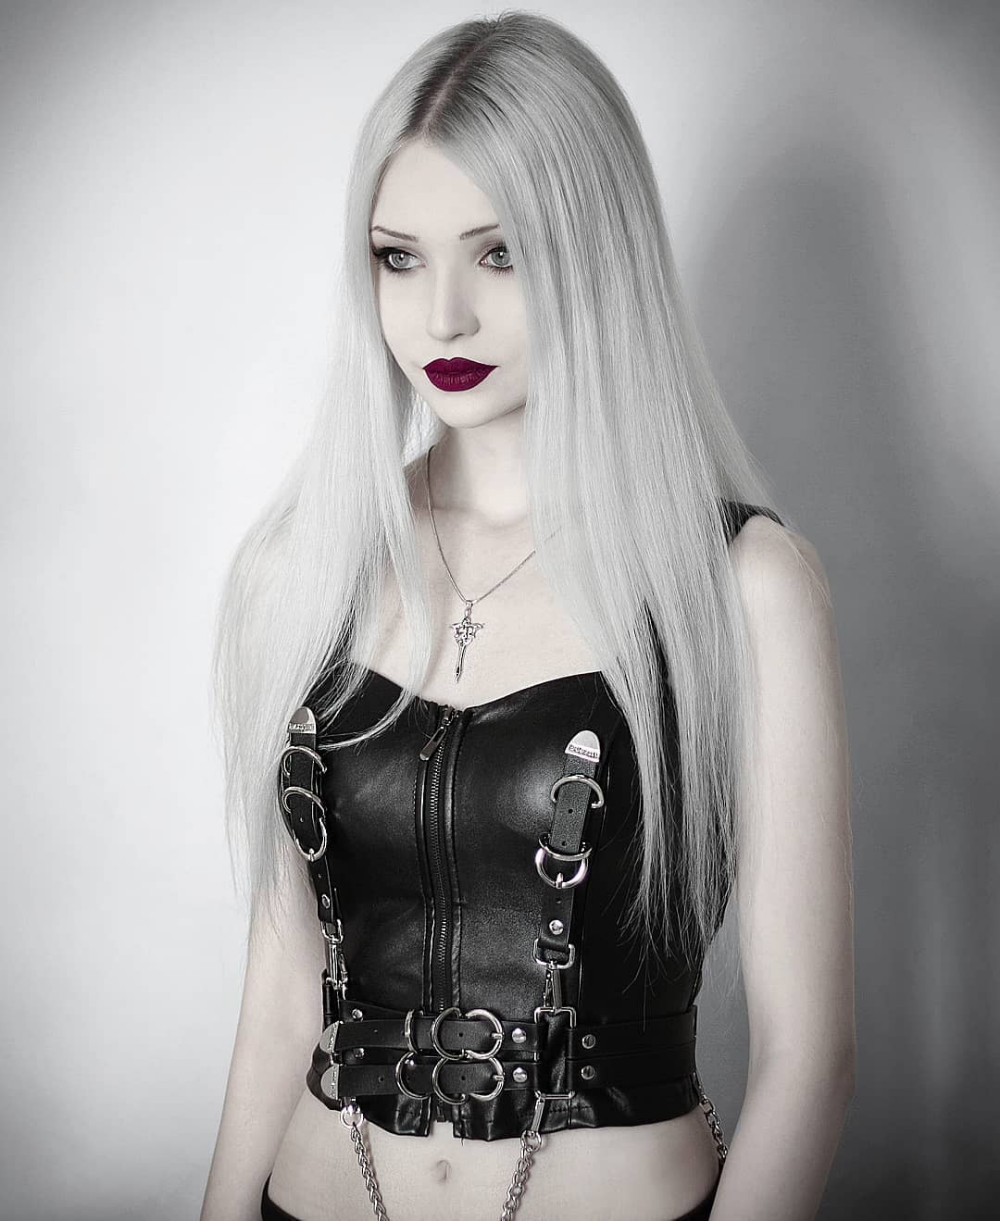 Pin By My Humble Hut On Gothic: Pin About Gothic Fashion On Gothic In 2019